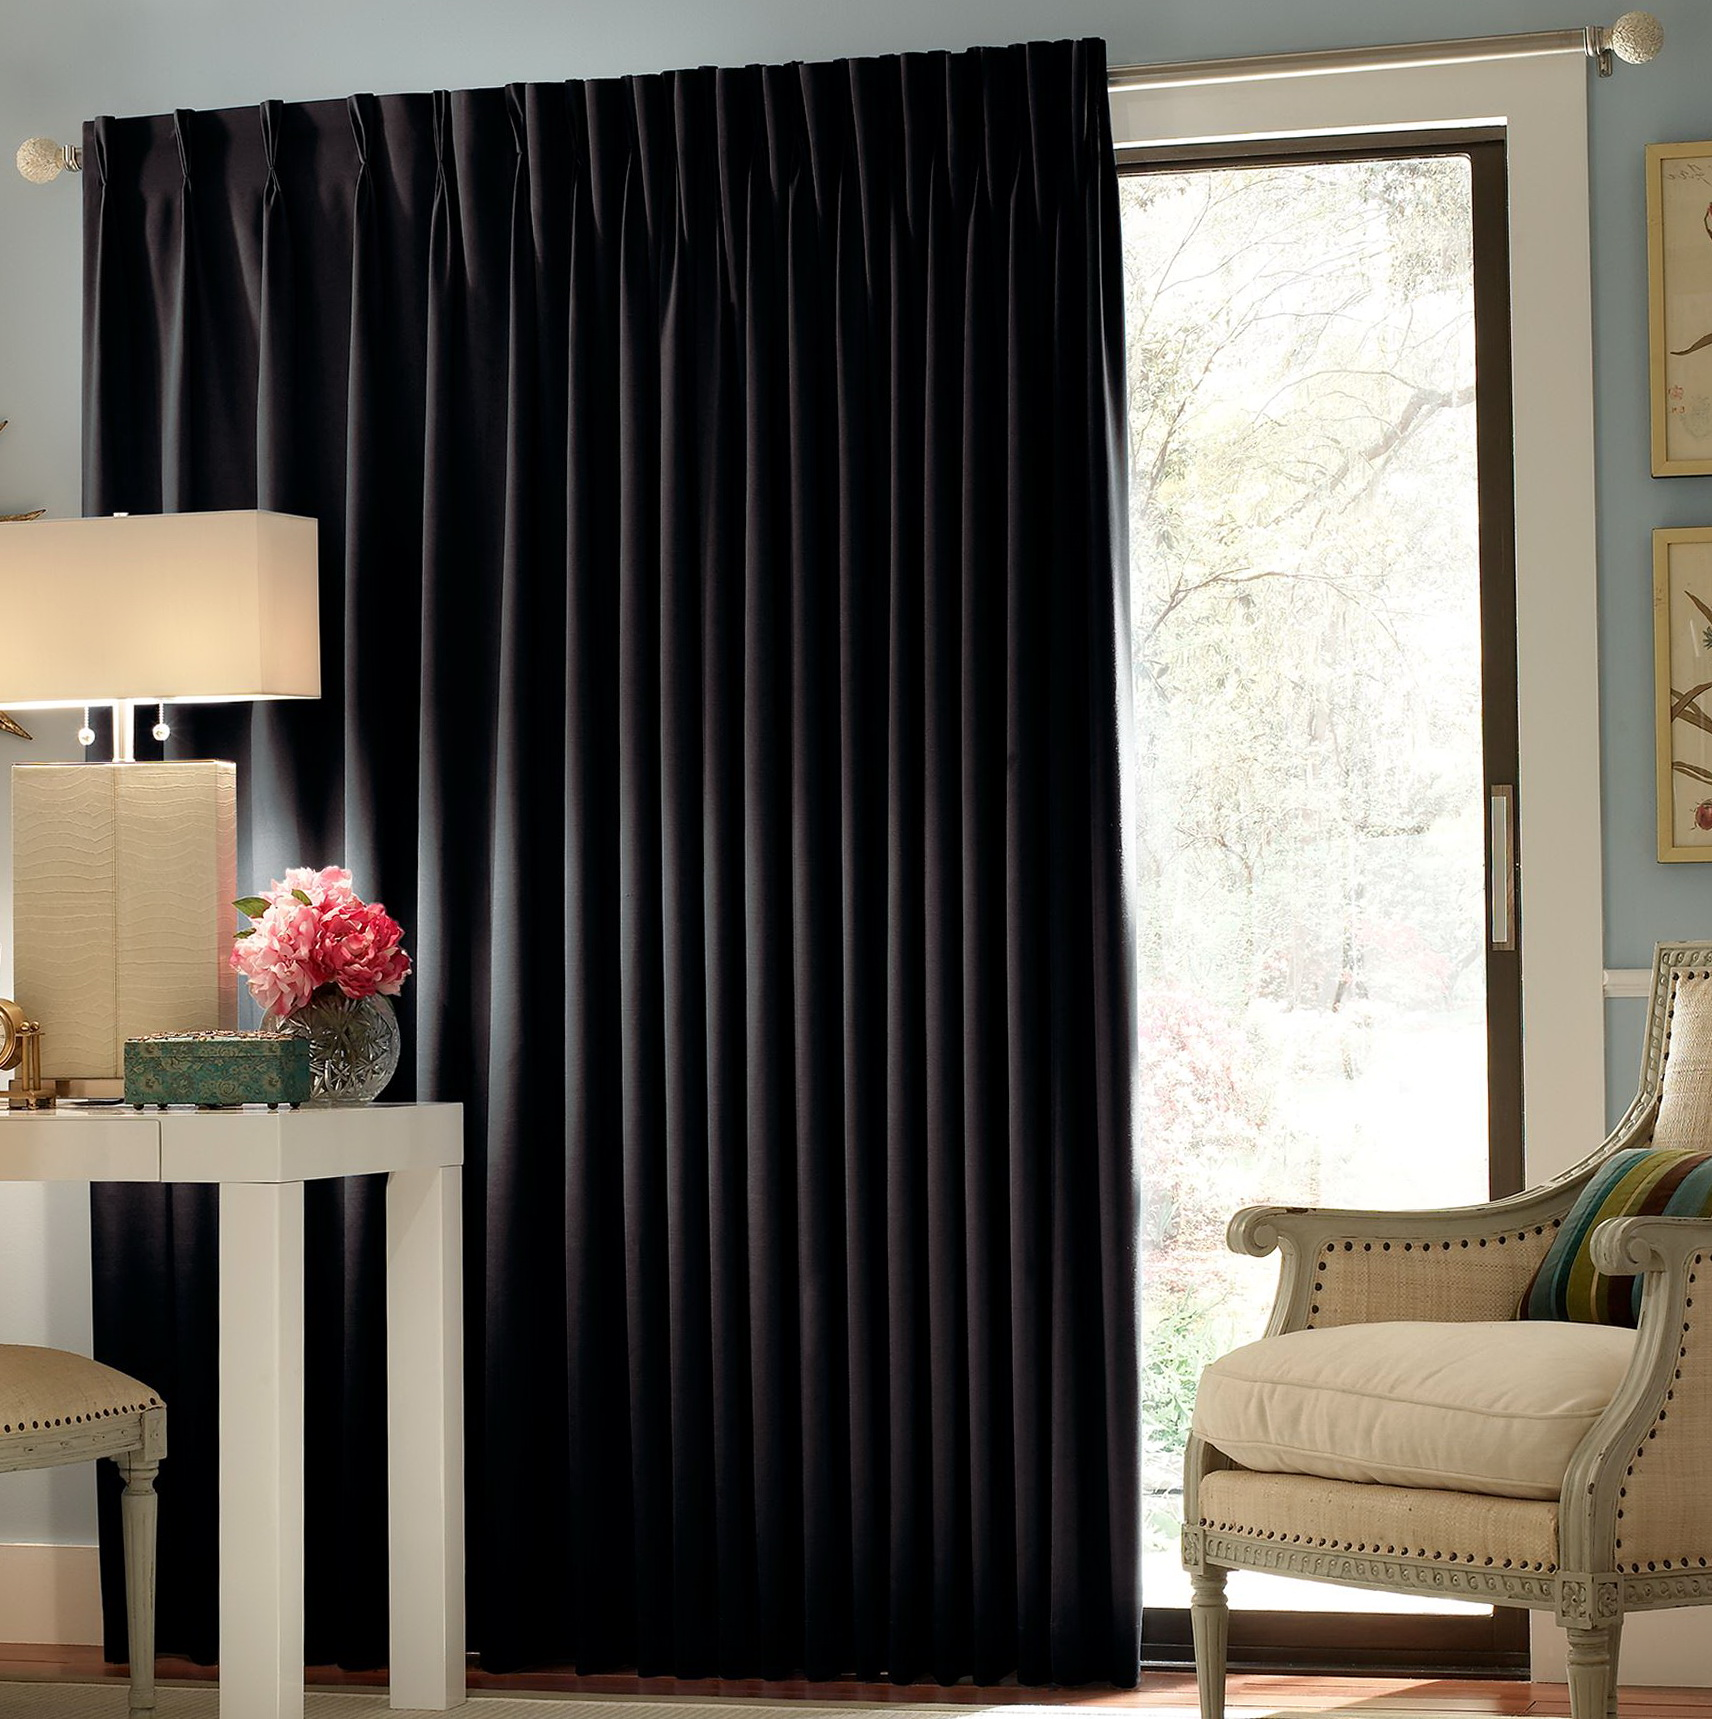 Blackout Curtain Panels Clearance Home Design Ideas